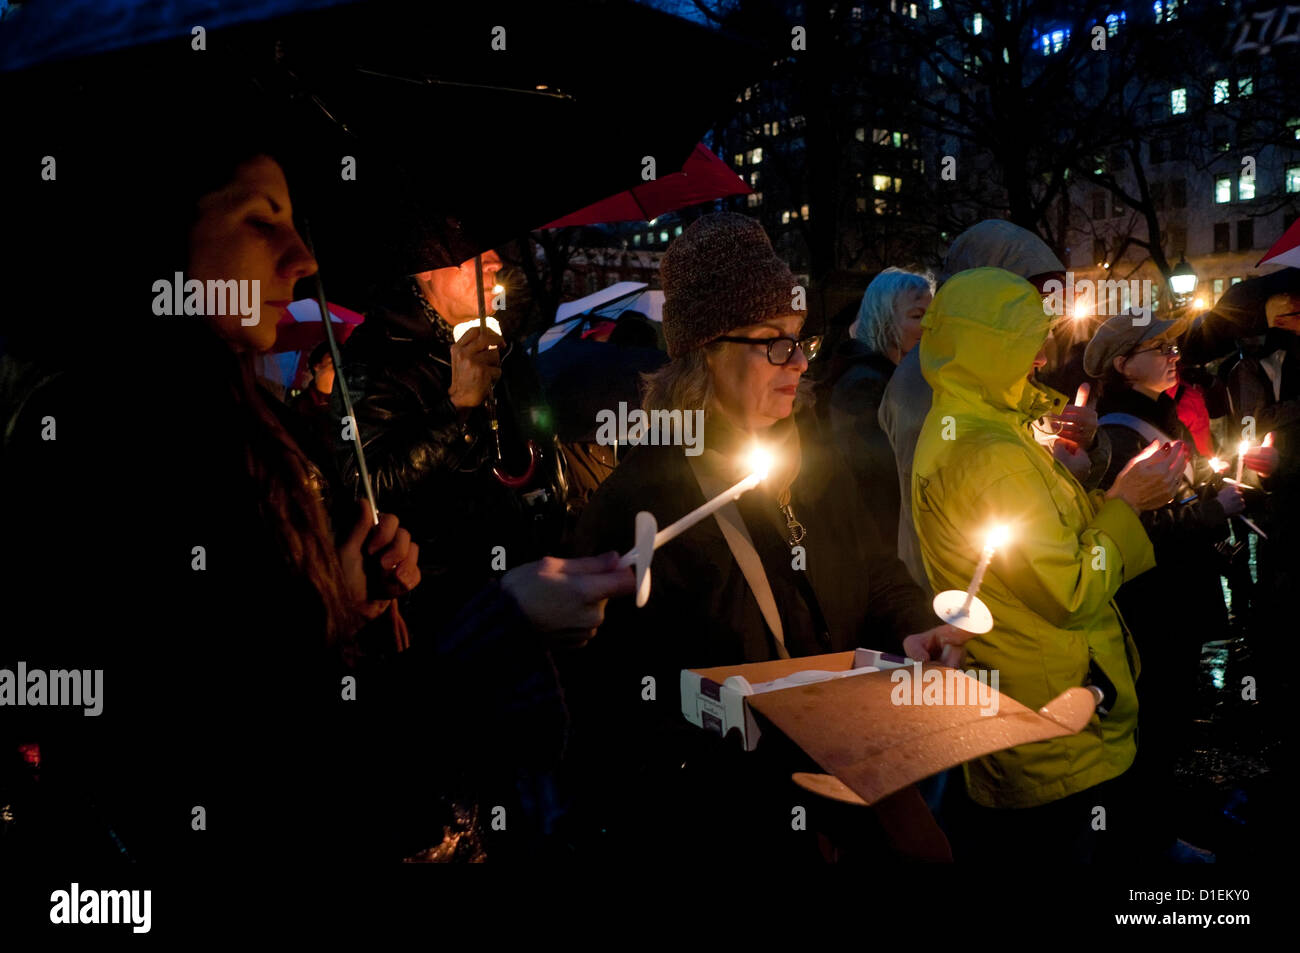 New York, NY -  16 December 2012 New Yorkers gathered in Washington Square Park for a Candlelight vigil to mourn - Stock Image